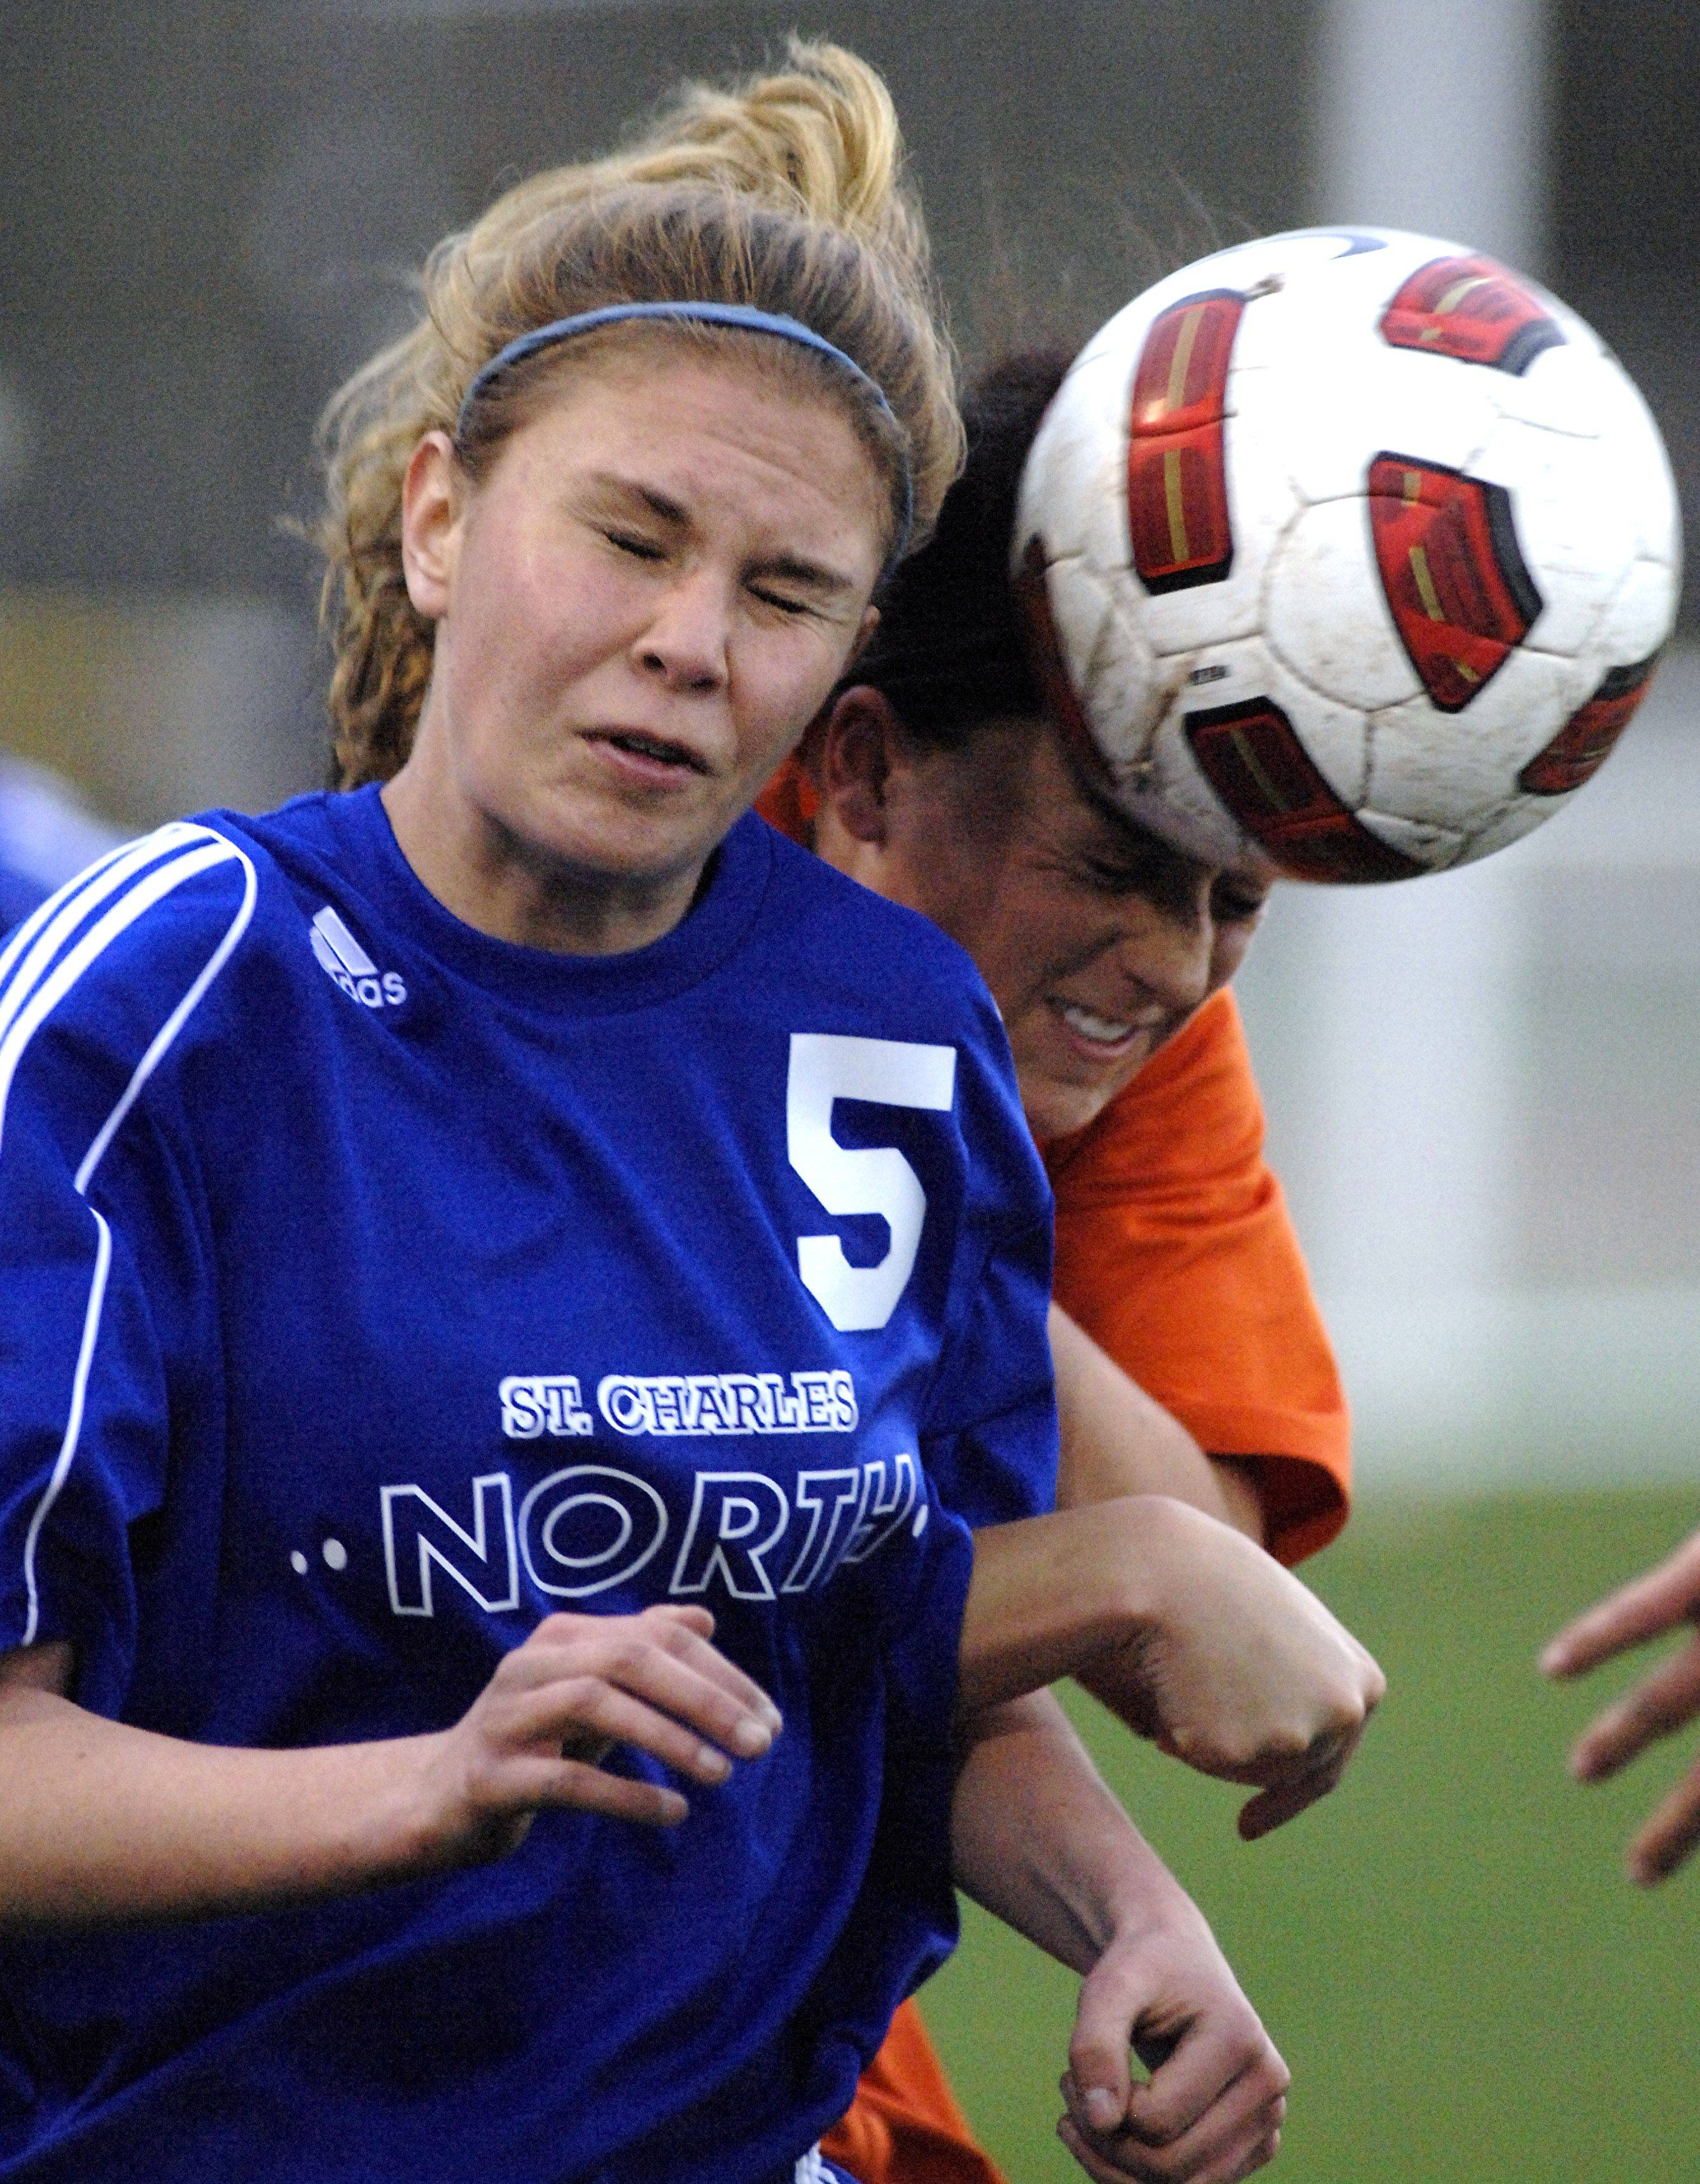 St. Charles North's Melissa Bronke and St. Charles East's Kate Rosignal fight for the ball in the first half Tuesday.